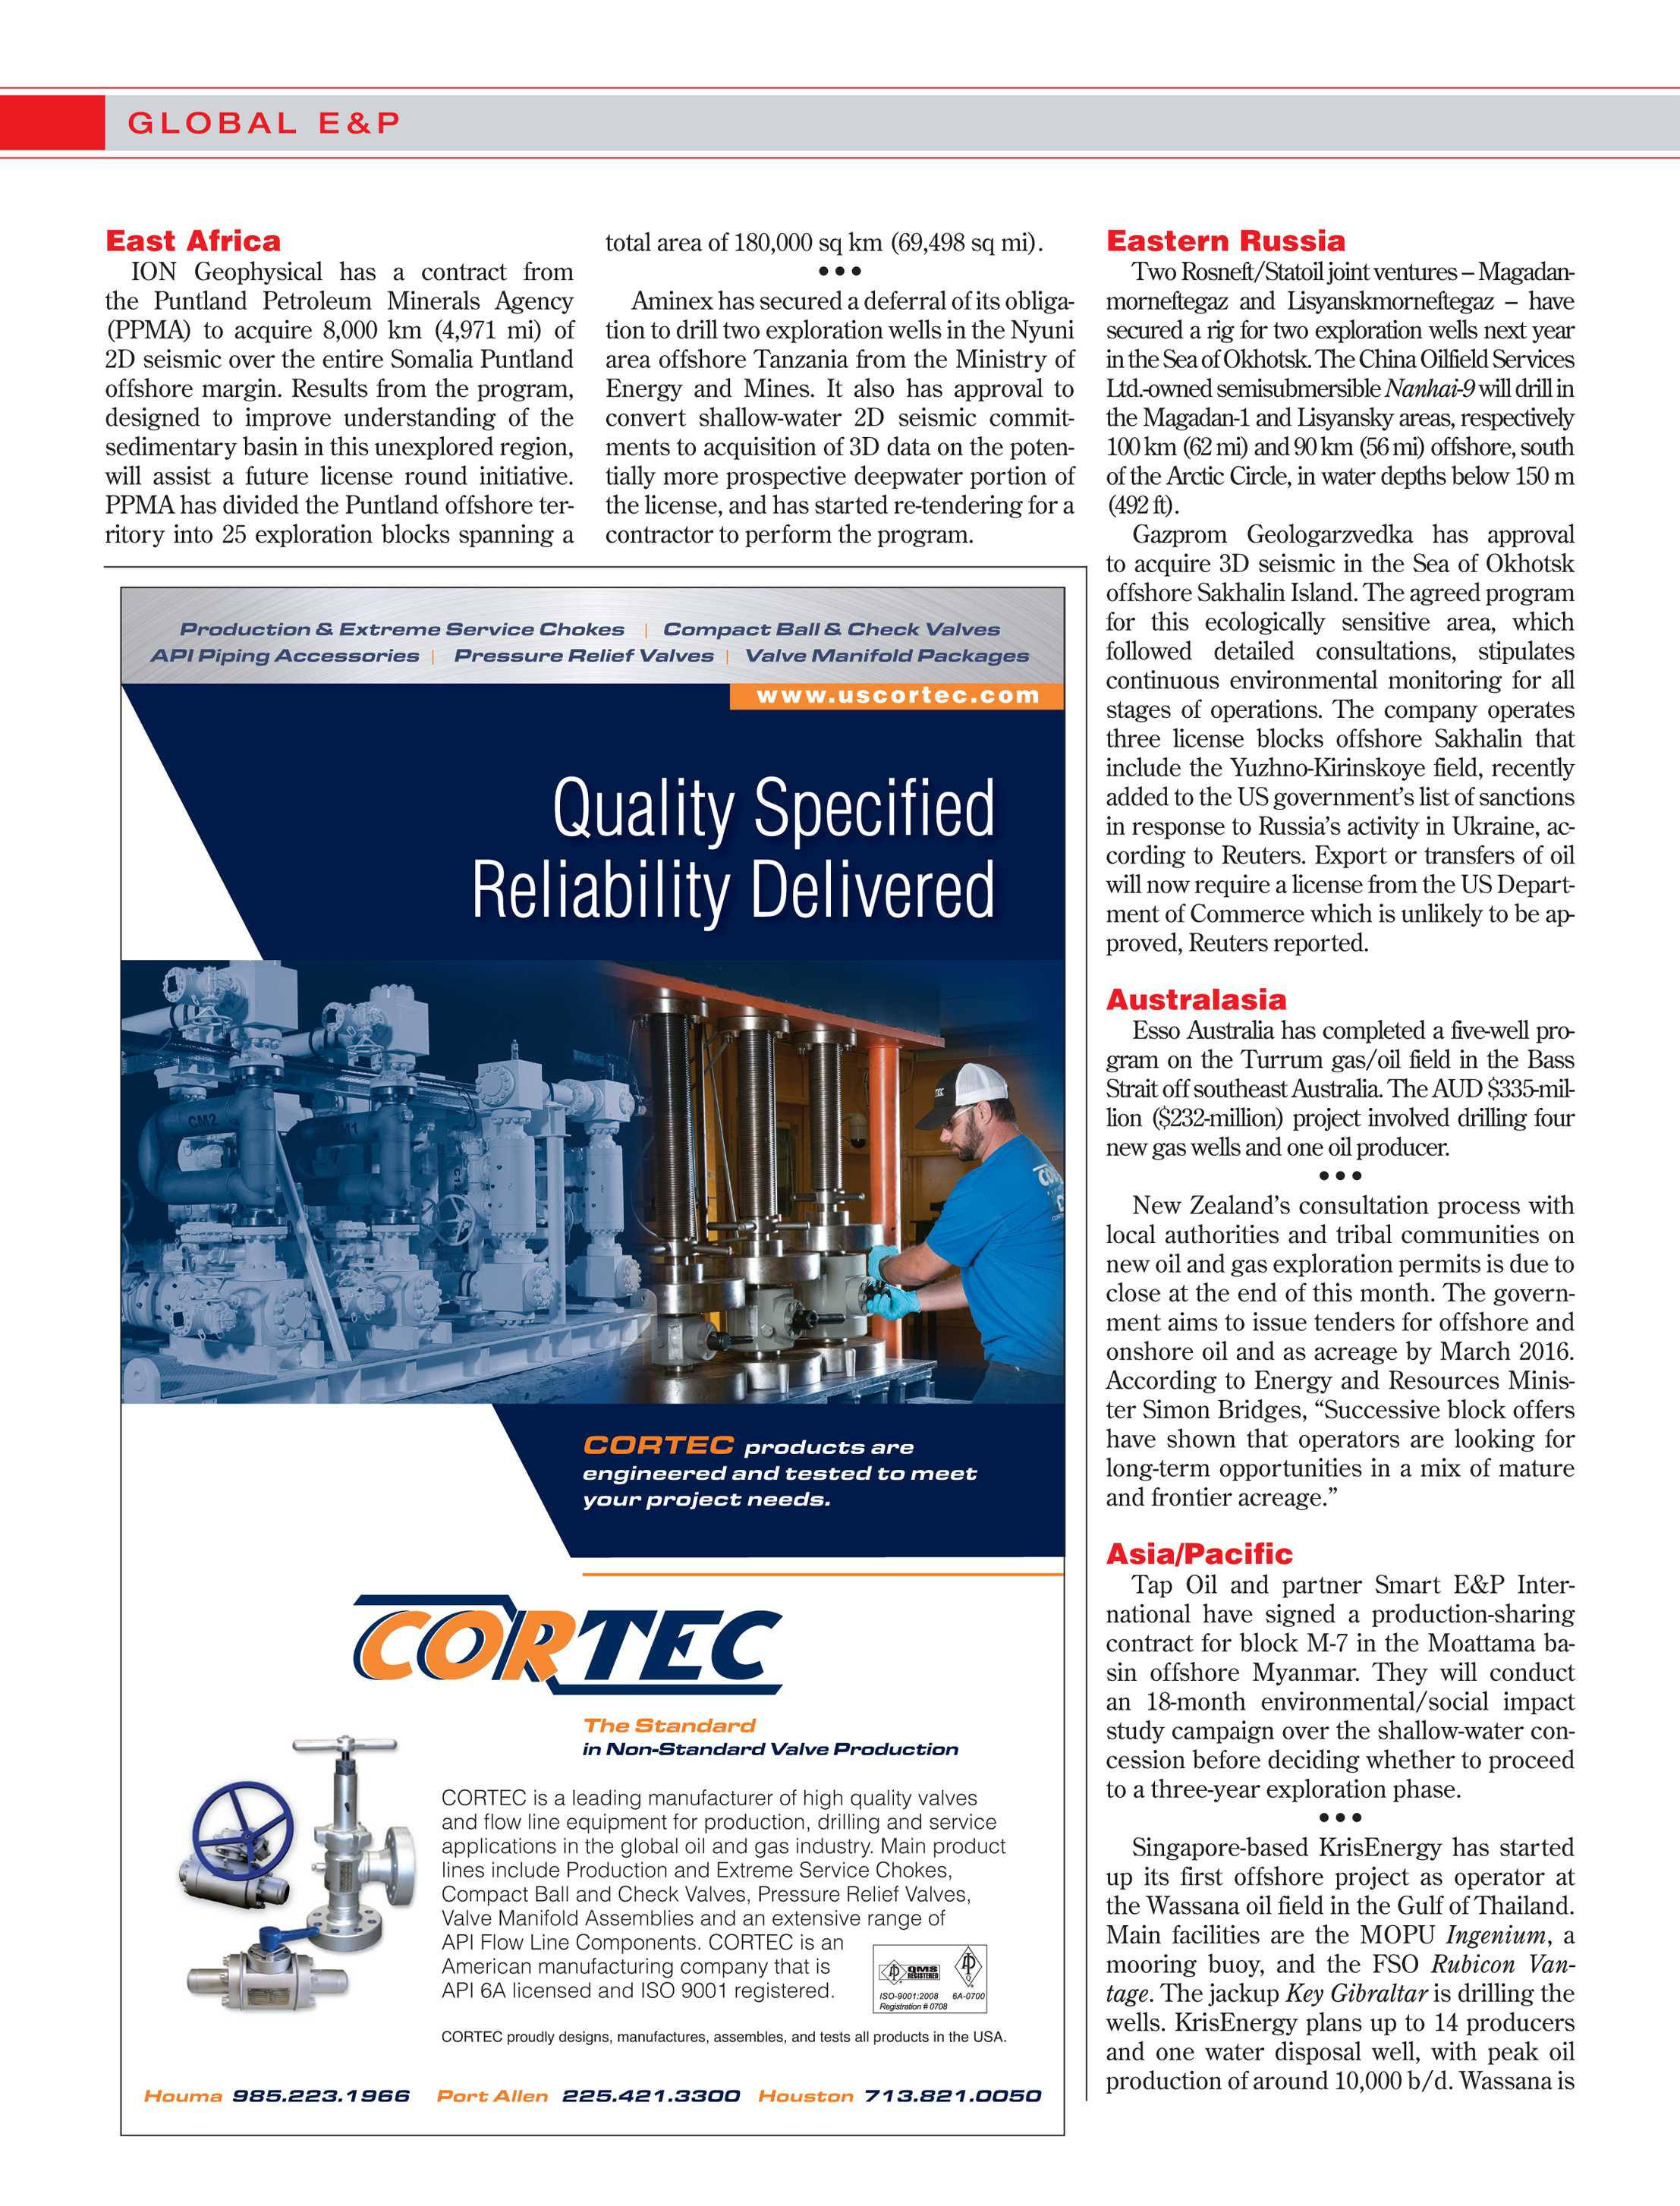 Offshore Magazine - October 2015 - page 14